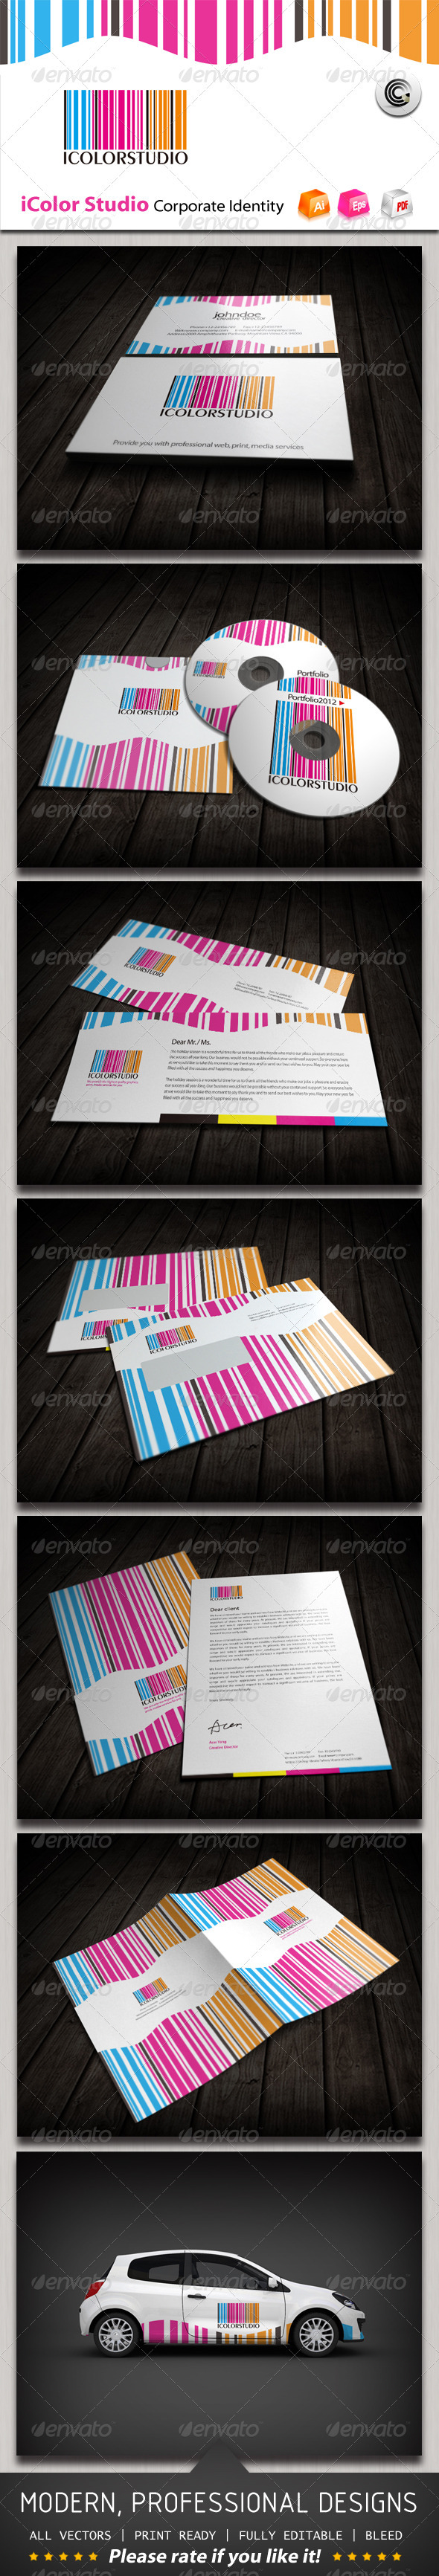 IColor Studio Corporate Identity - Stationery Print Templates